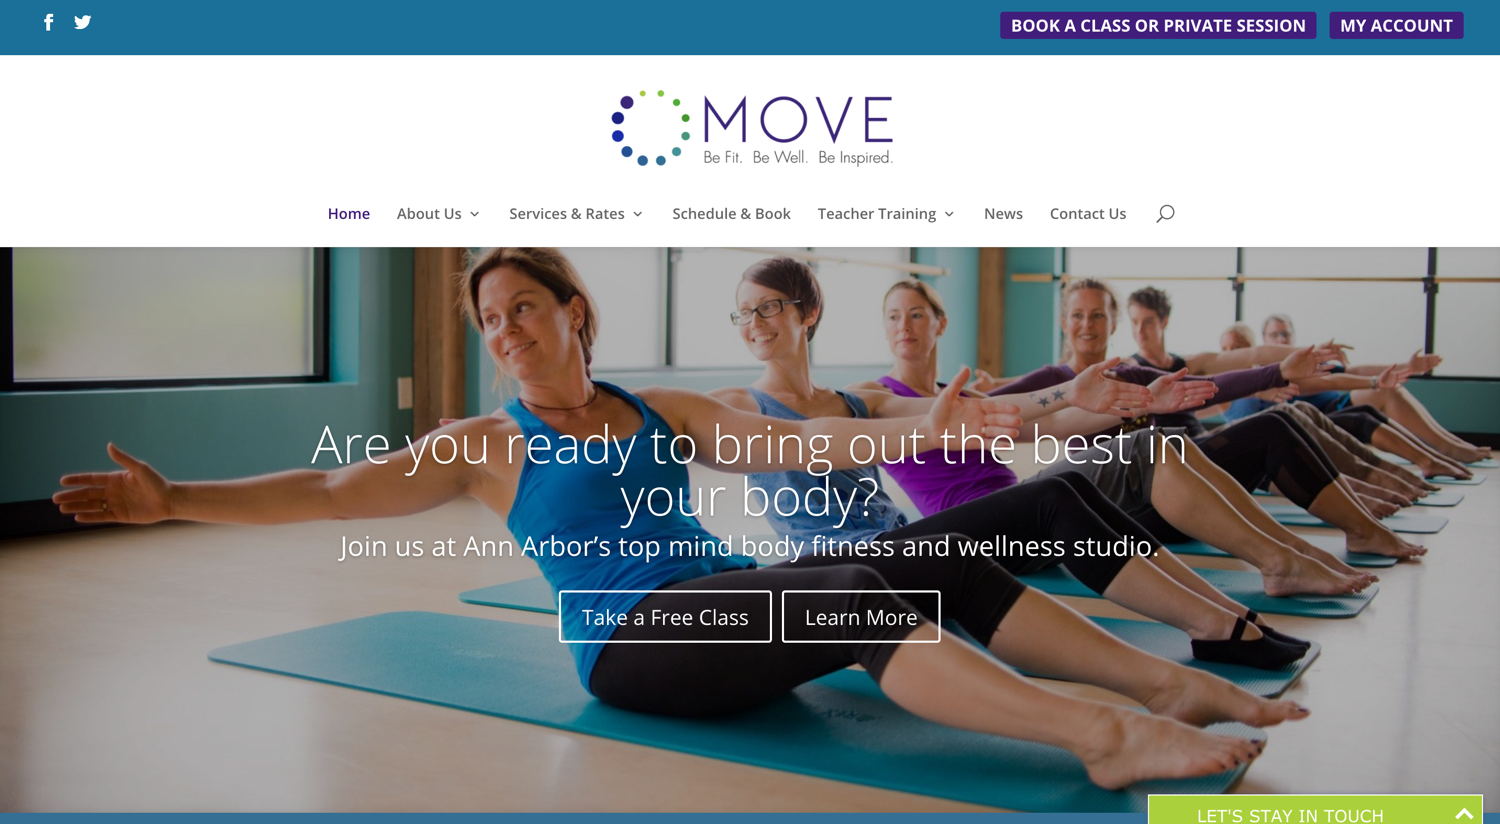 movewellness.com